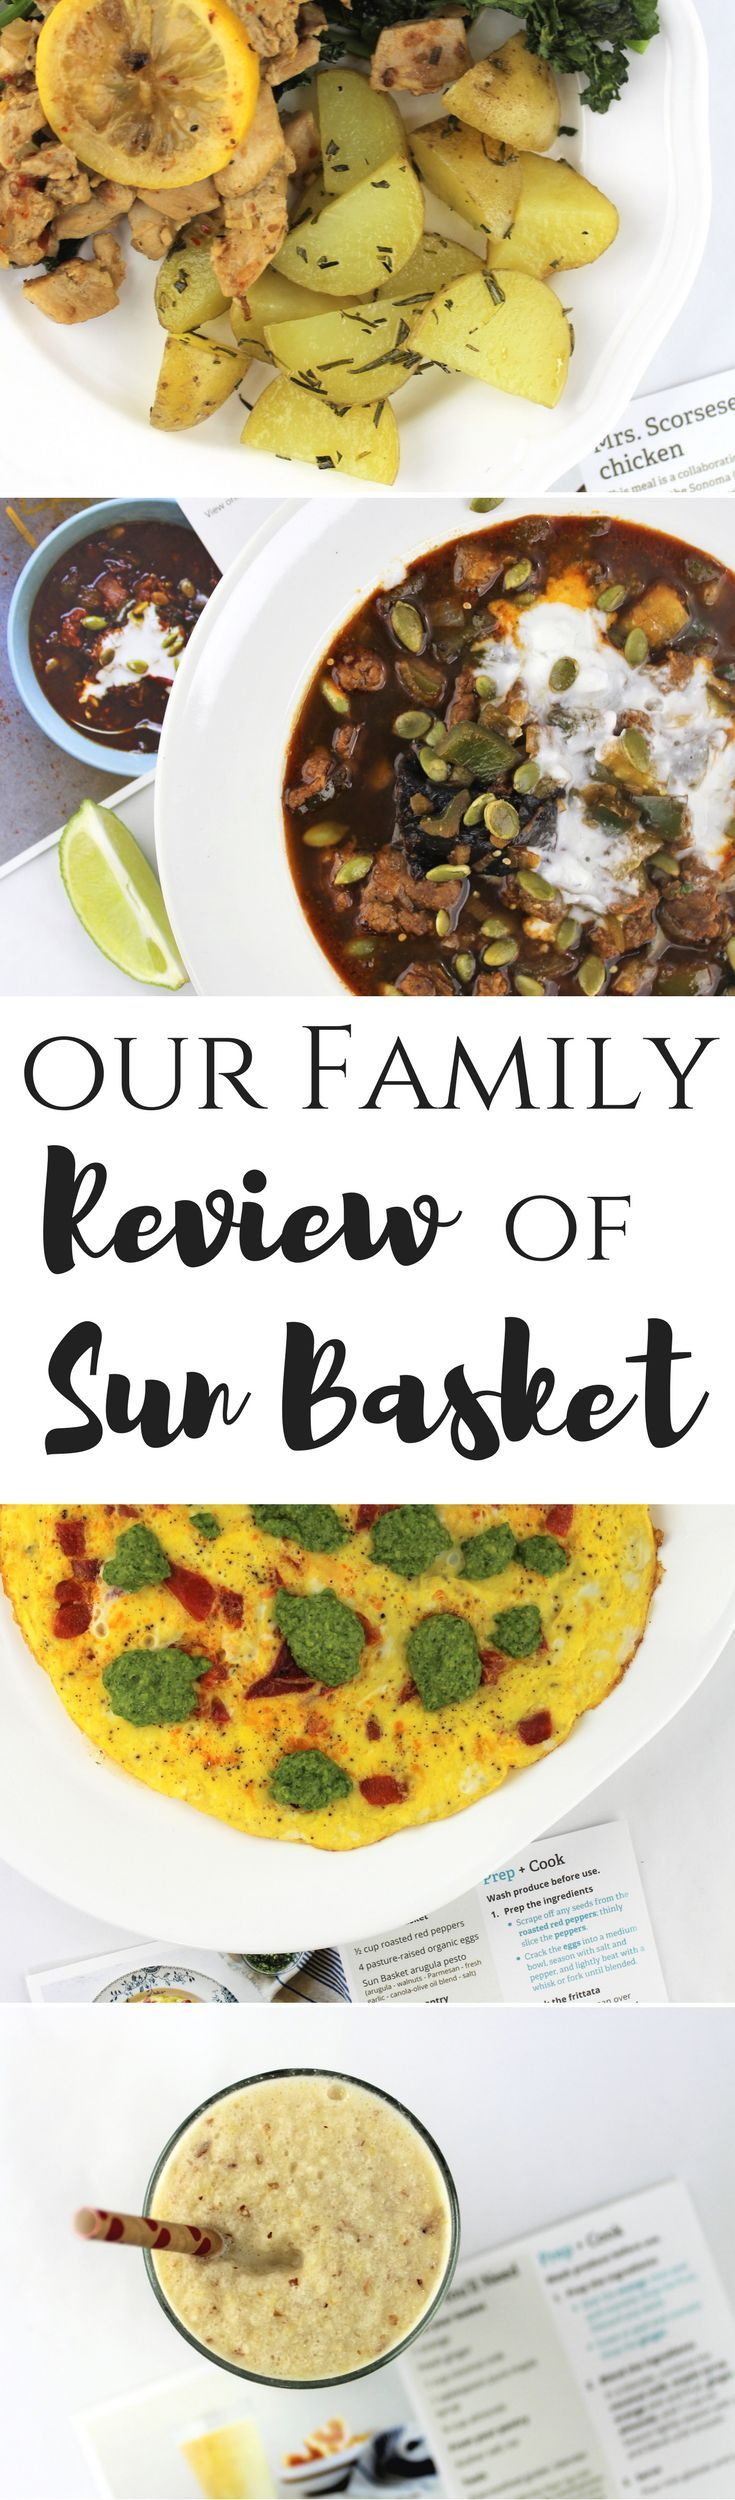 Our Family Review of Sun Basket | Meal delivery system | Organic, fresh, convenient | #ad |